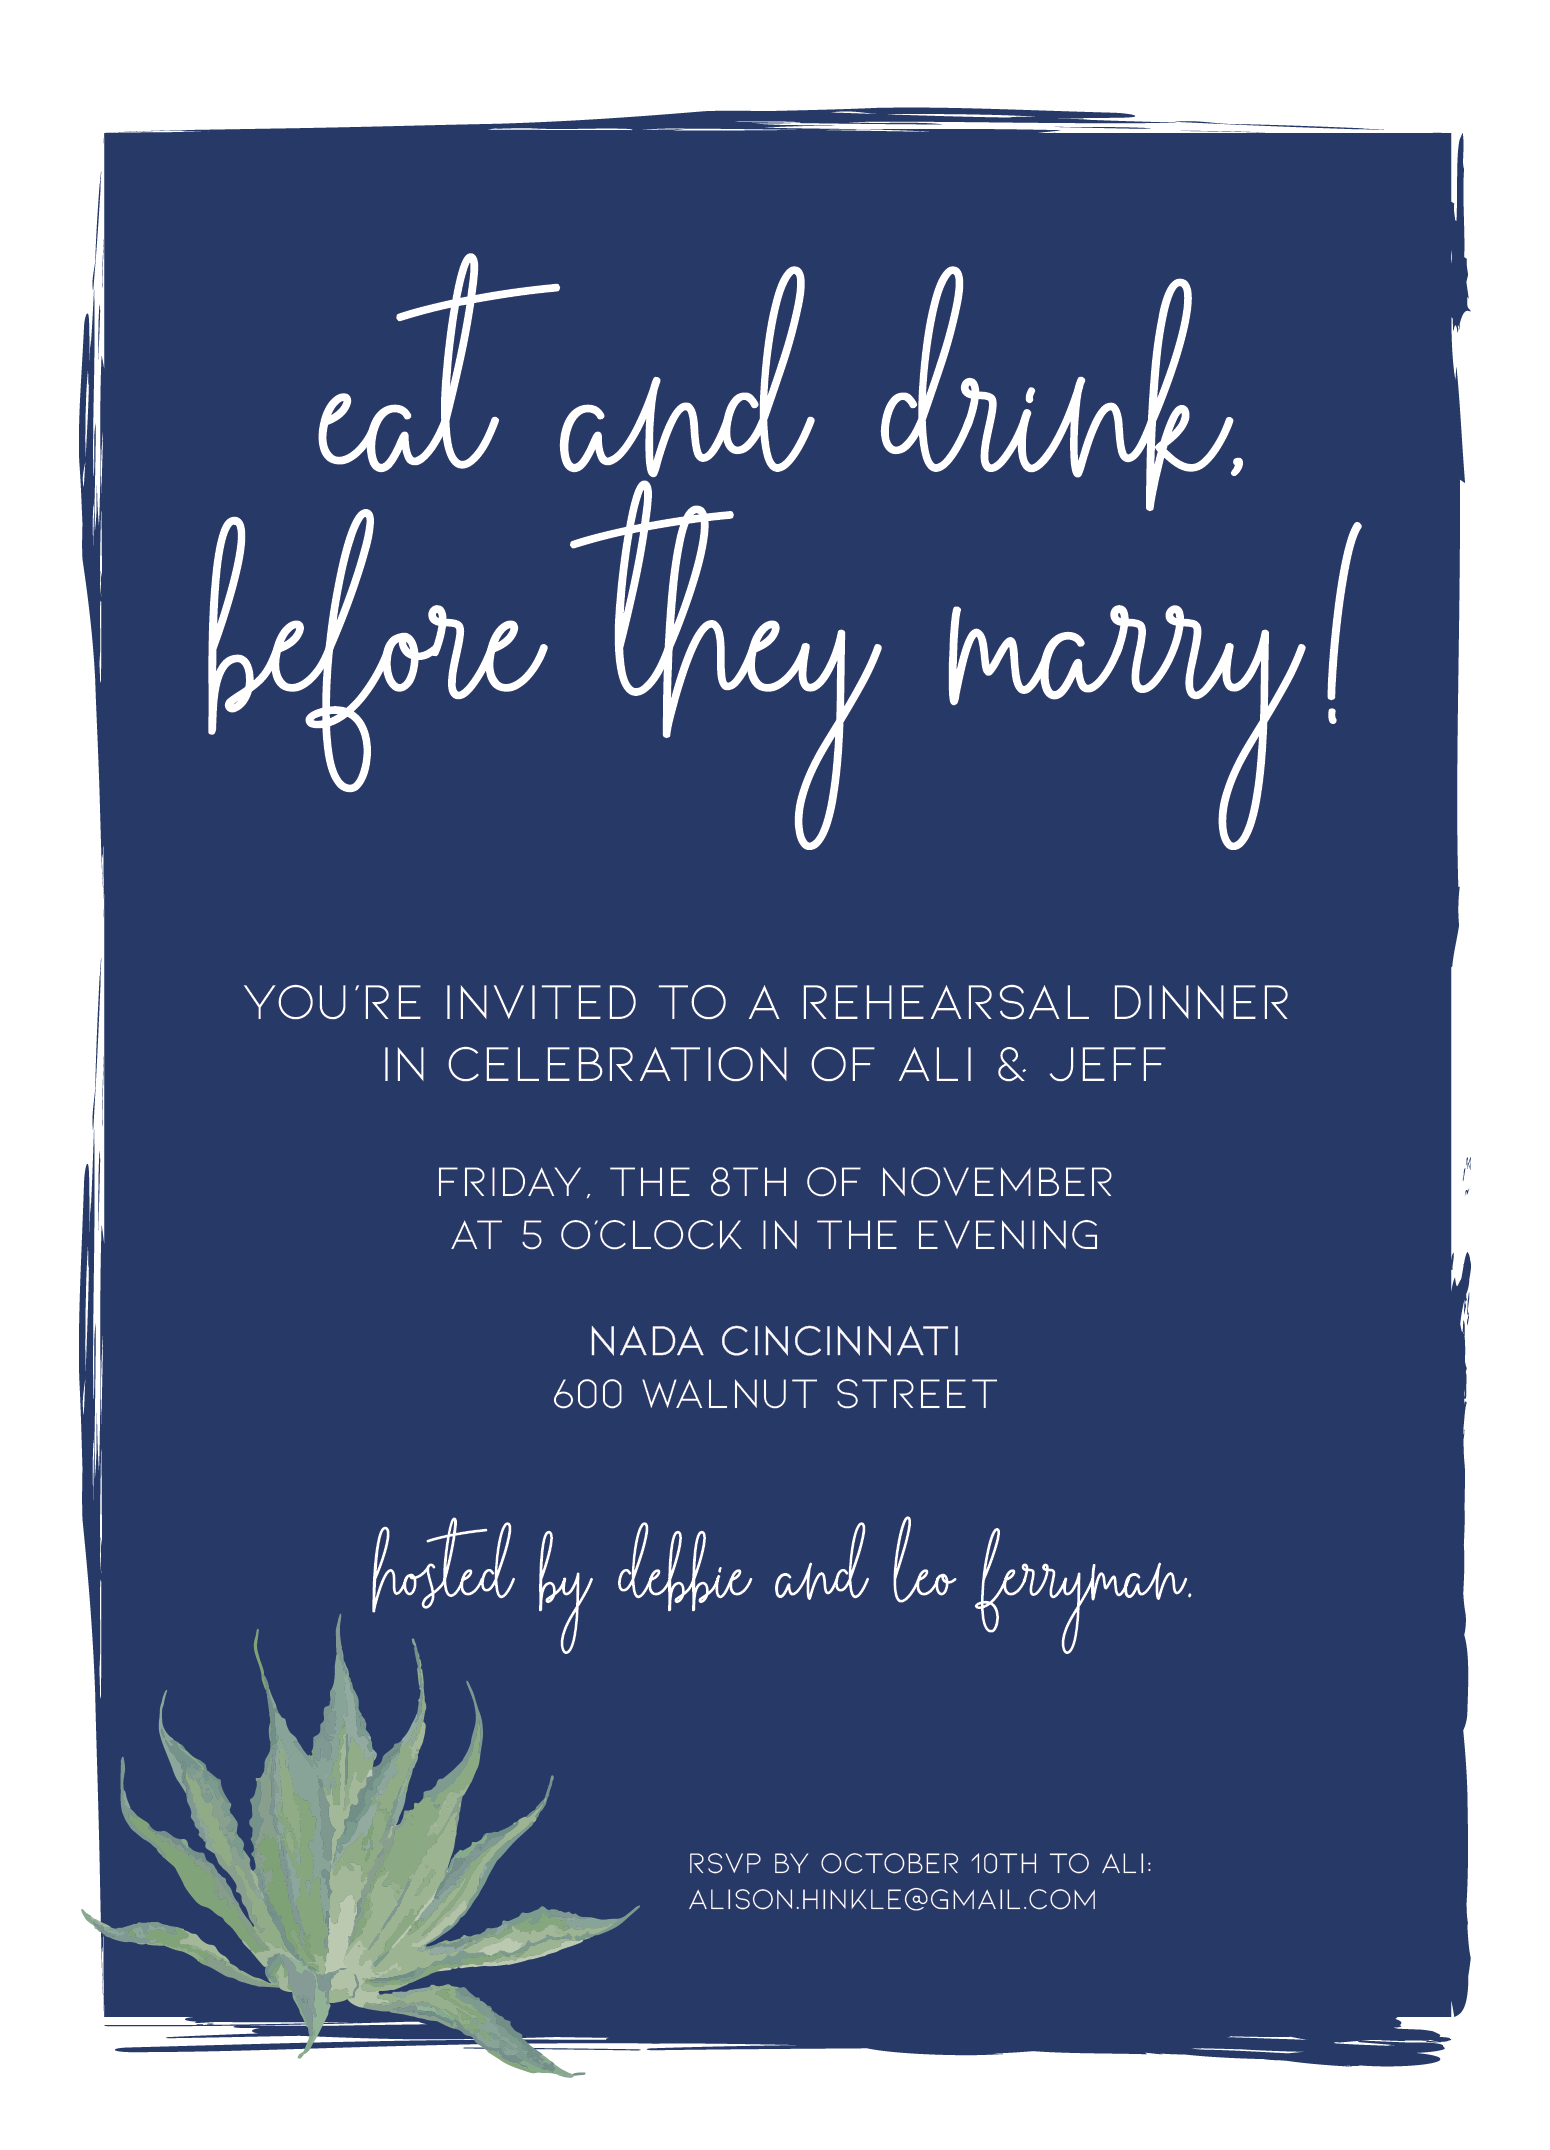 Rehearsal Dinner Invitations2-01.png